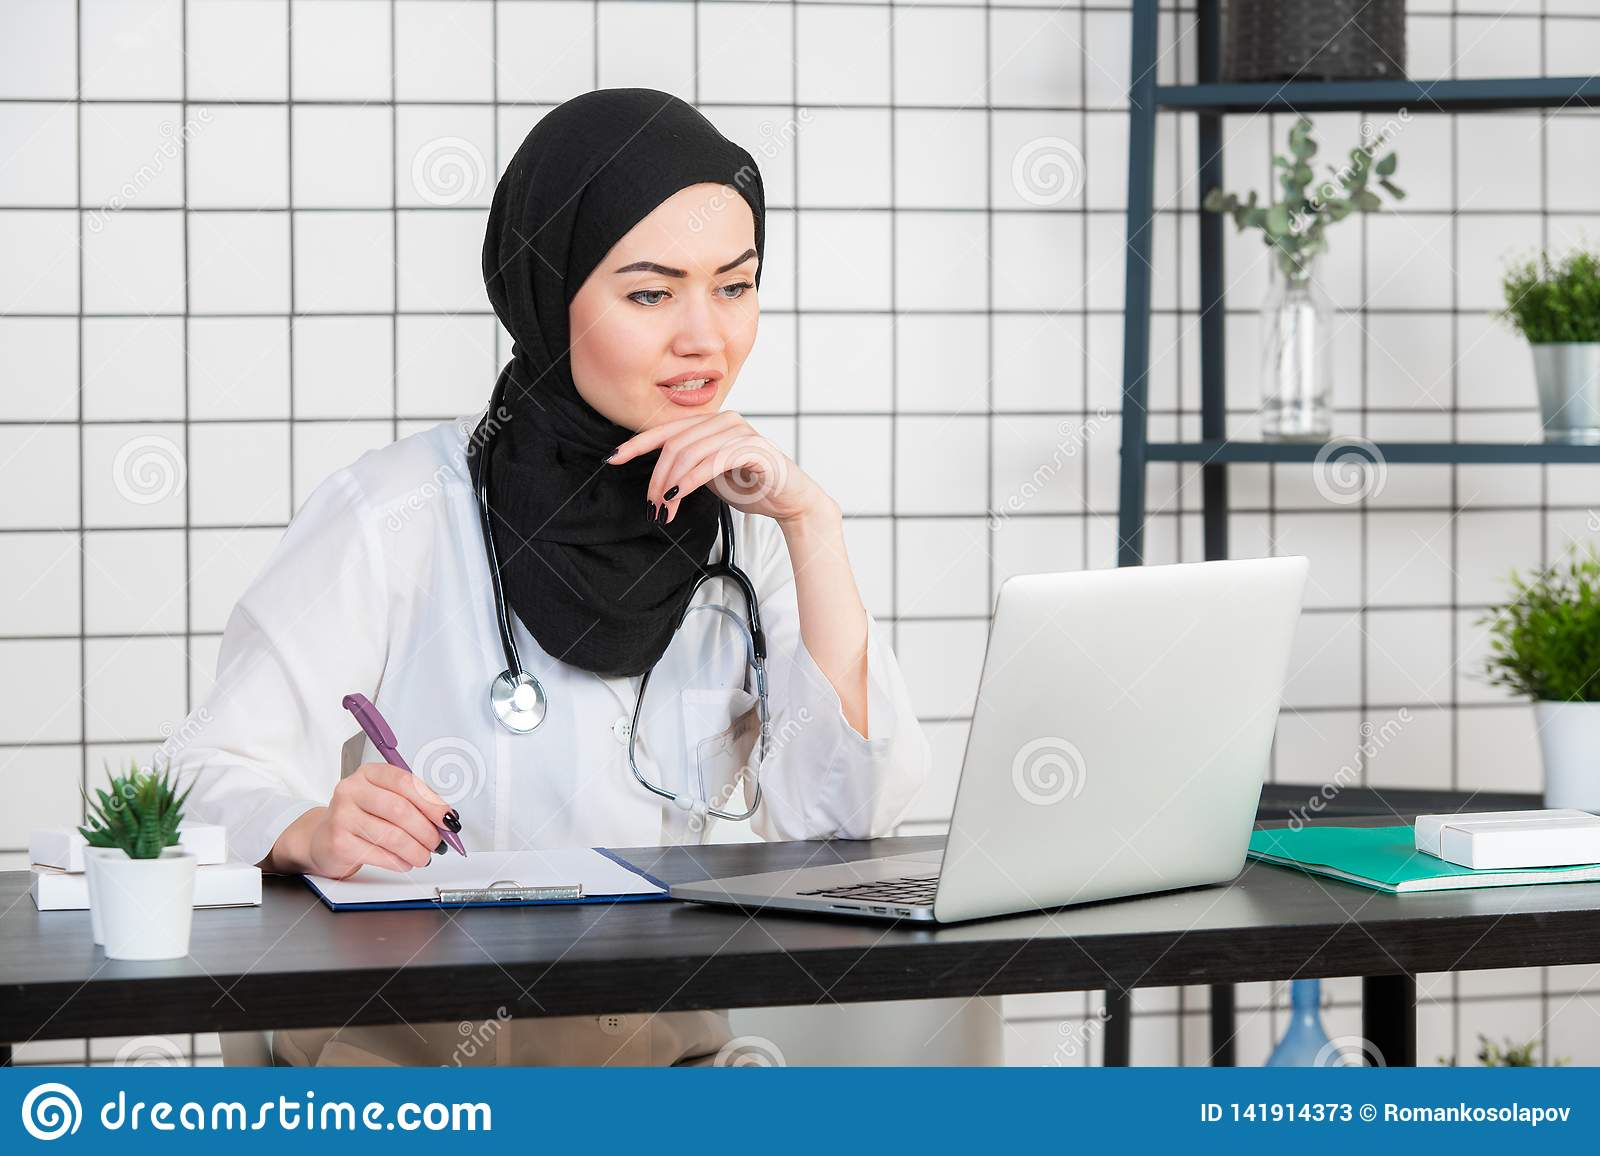 Young smiling woman sitting at desk, working on computer with medical documents in light office in hospital. Female